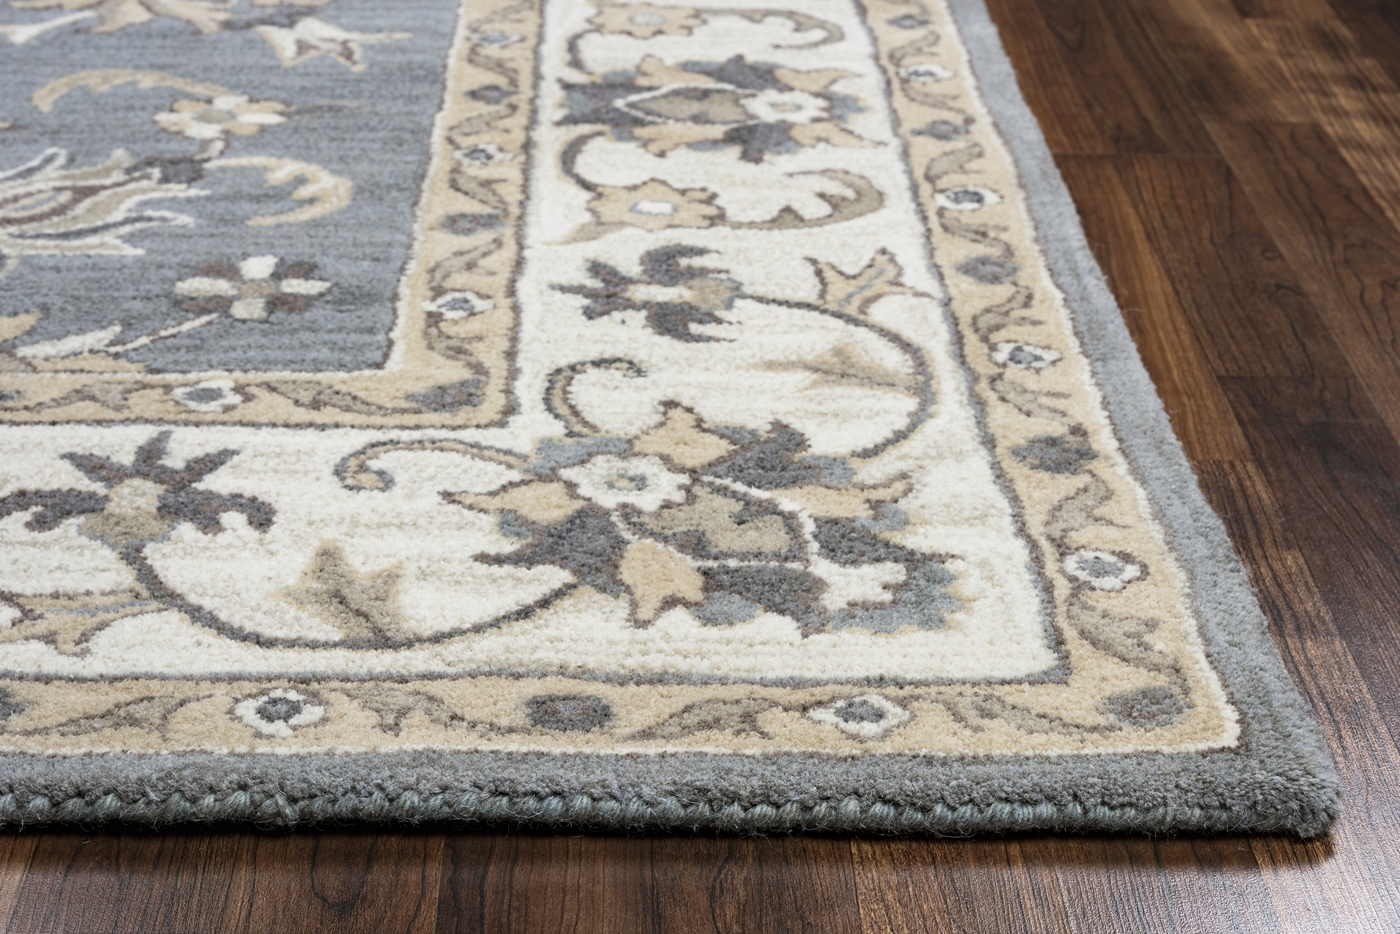 Valintino Floral Vine Border Wool Area Rug In Gray Tan